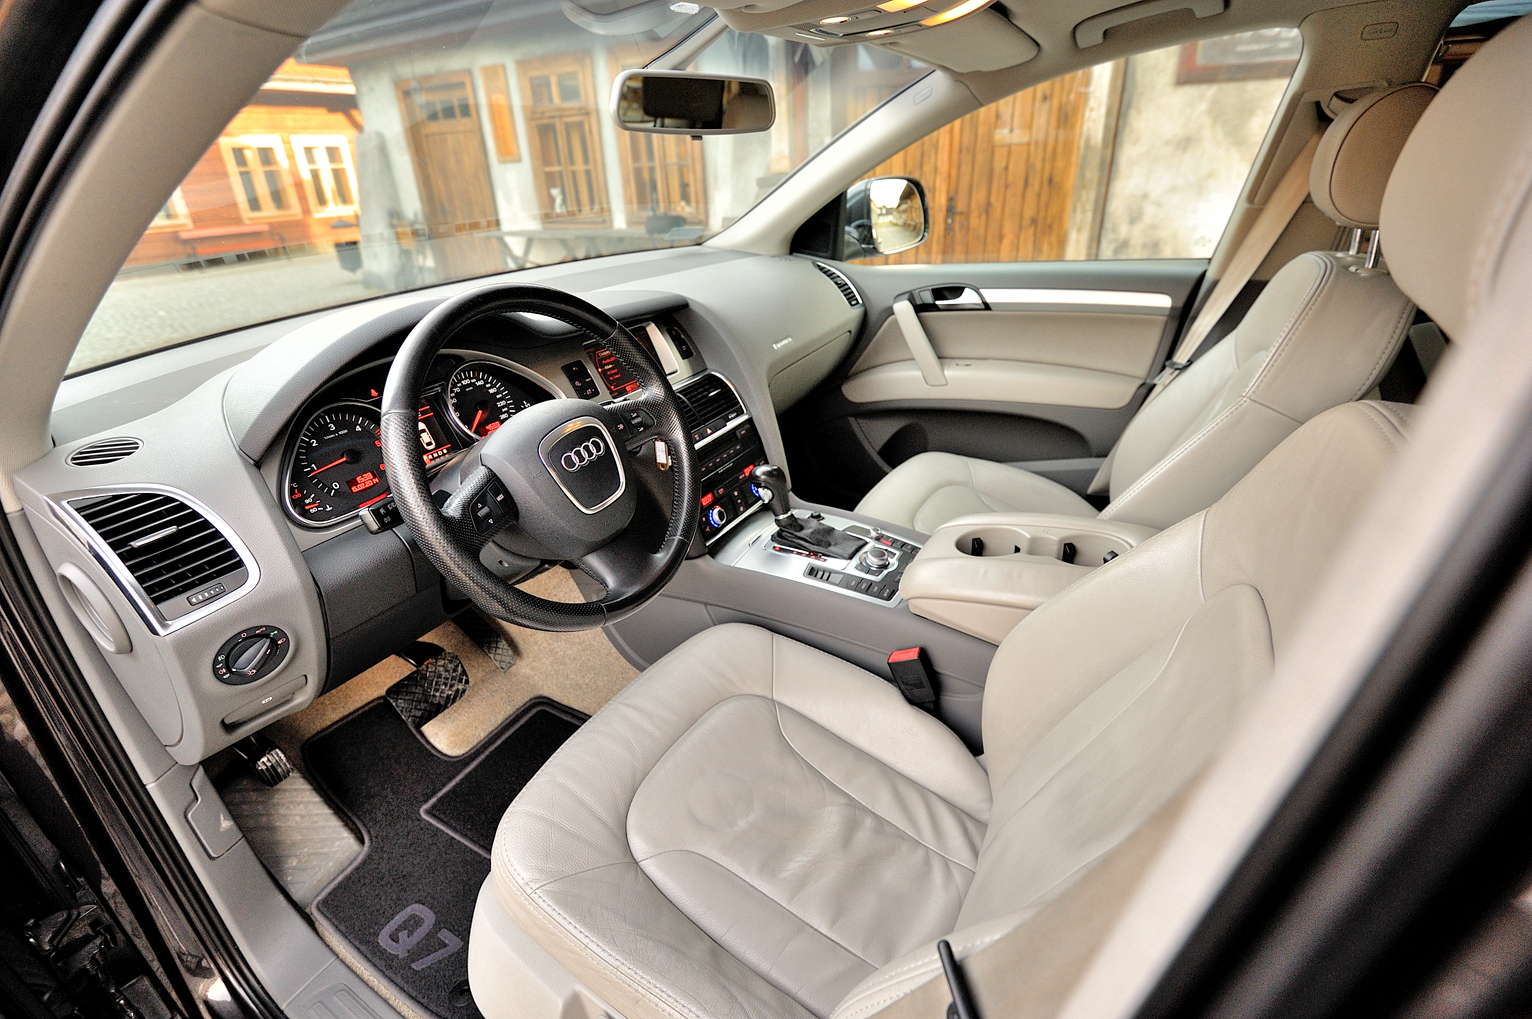 FileAudi Q7 interiorpng Wikimedia Commons